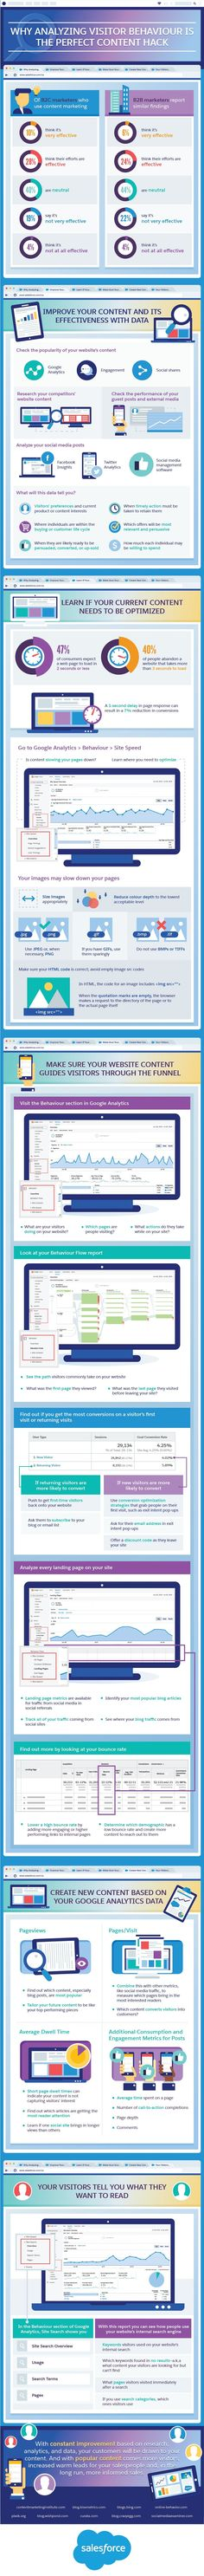 How to Improve Your Content by Analyzing Visitor Behavior [Infographic] | Social Media Today